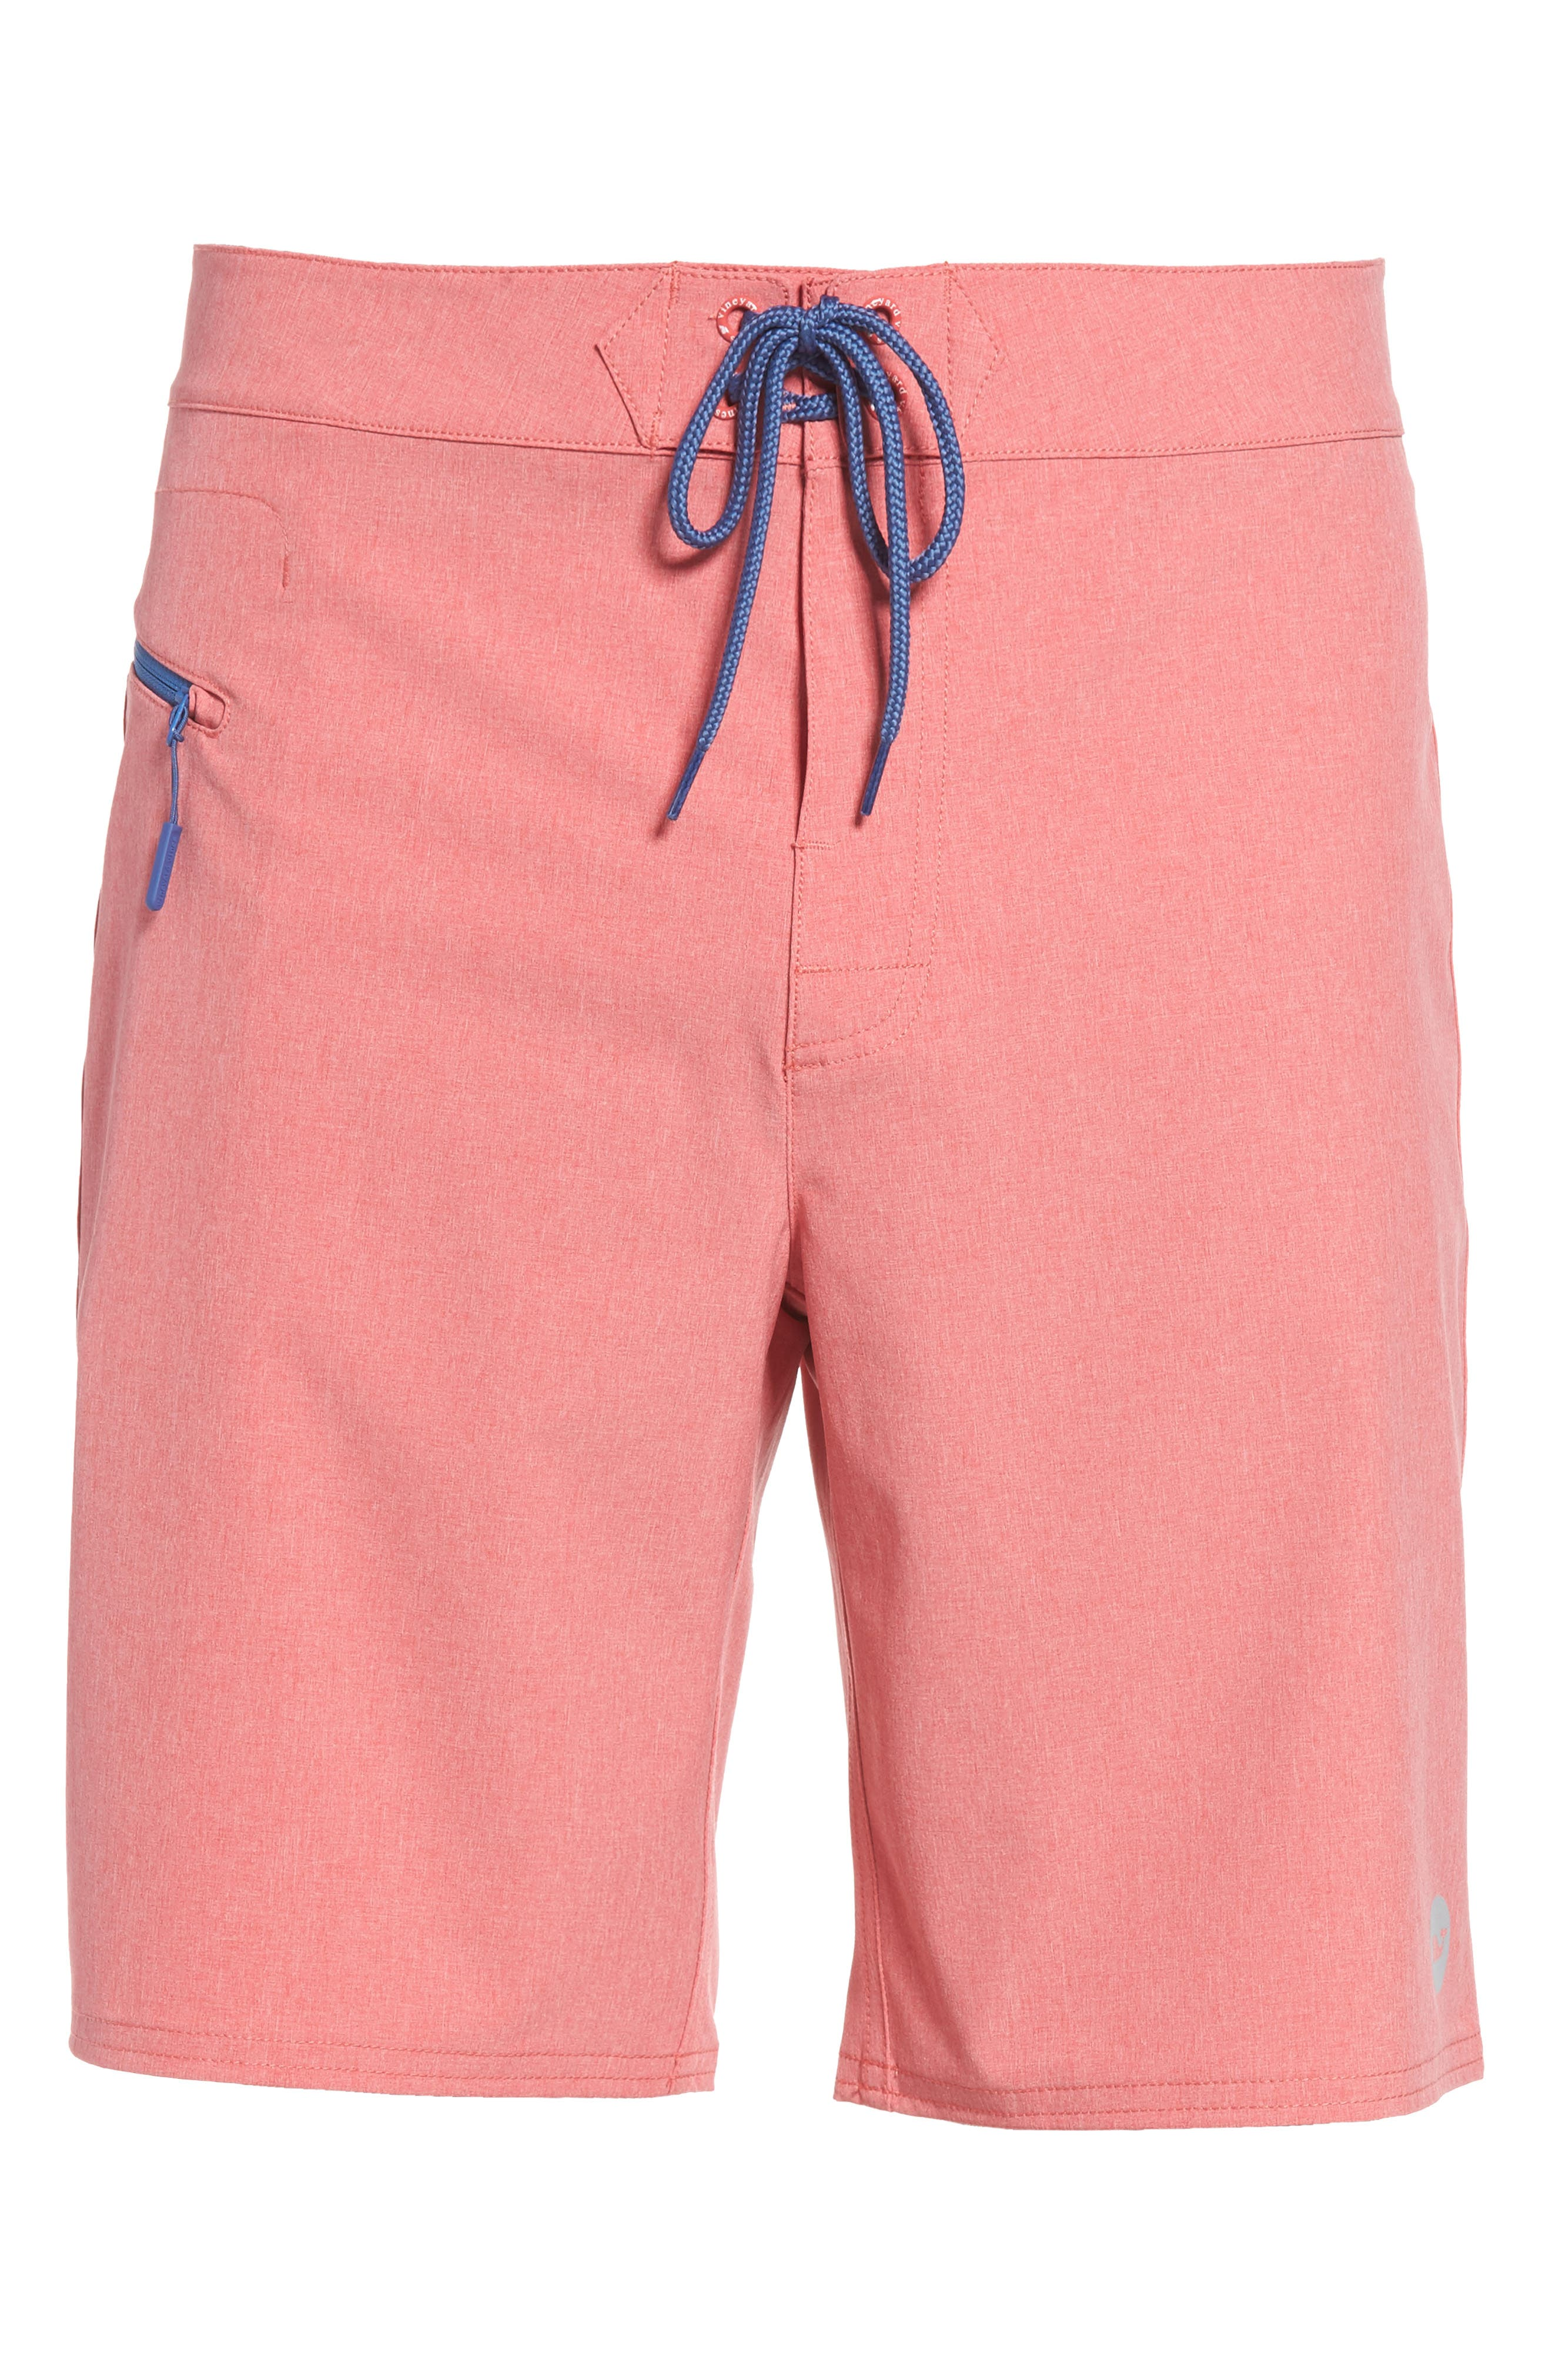 Heather Stretch Board Shorts,                             Alternate thumbnail 23, color,